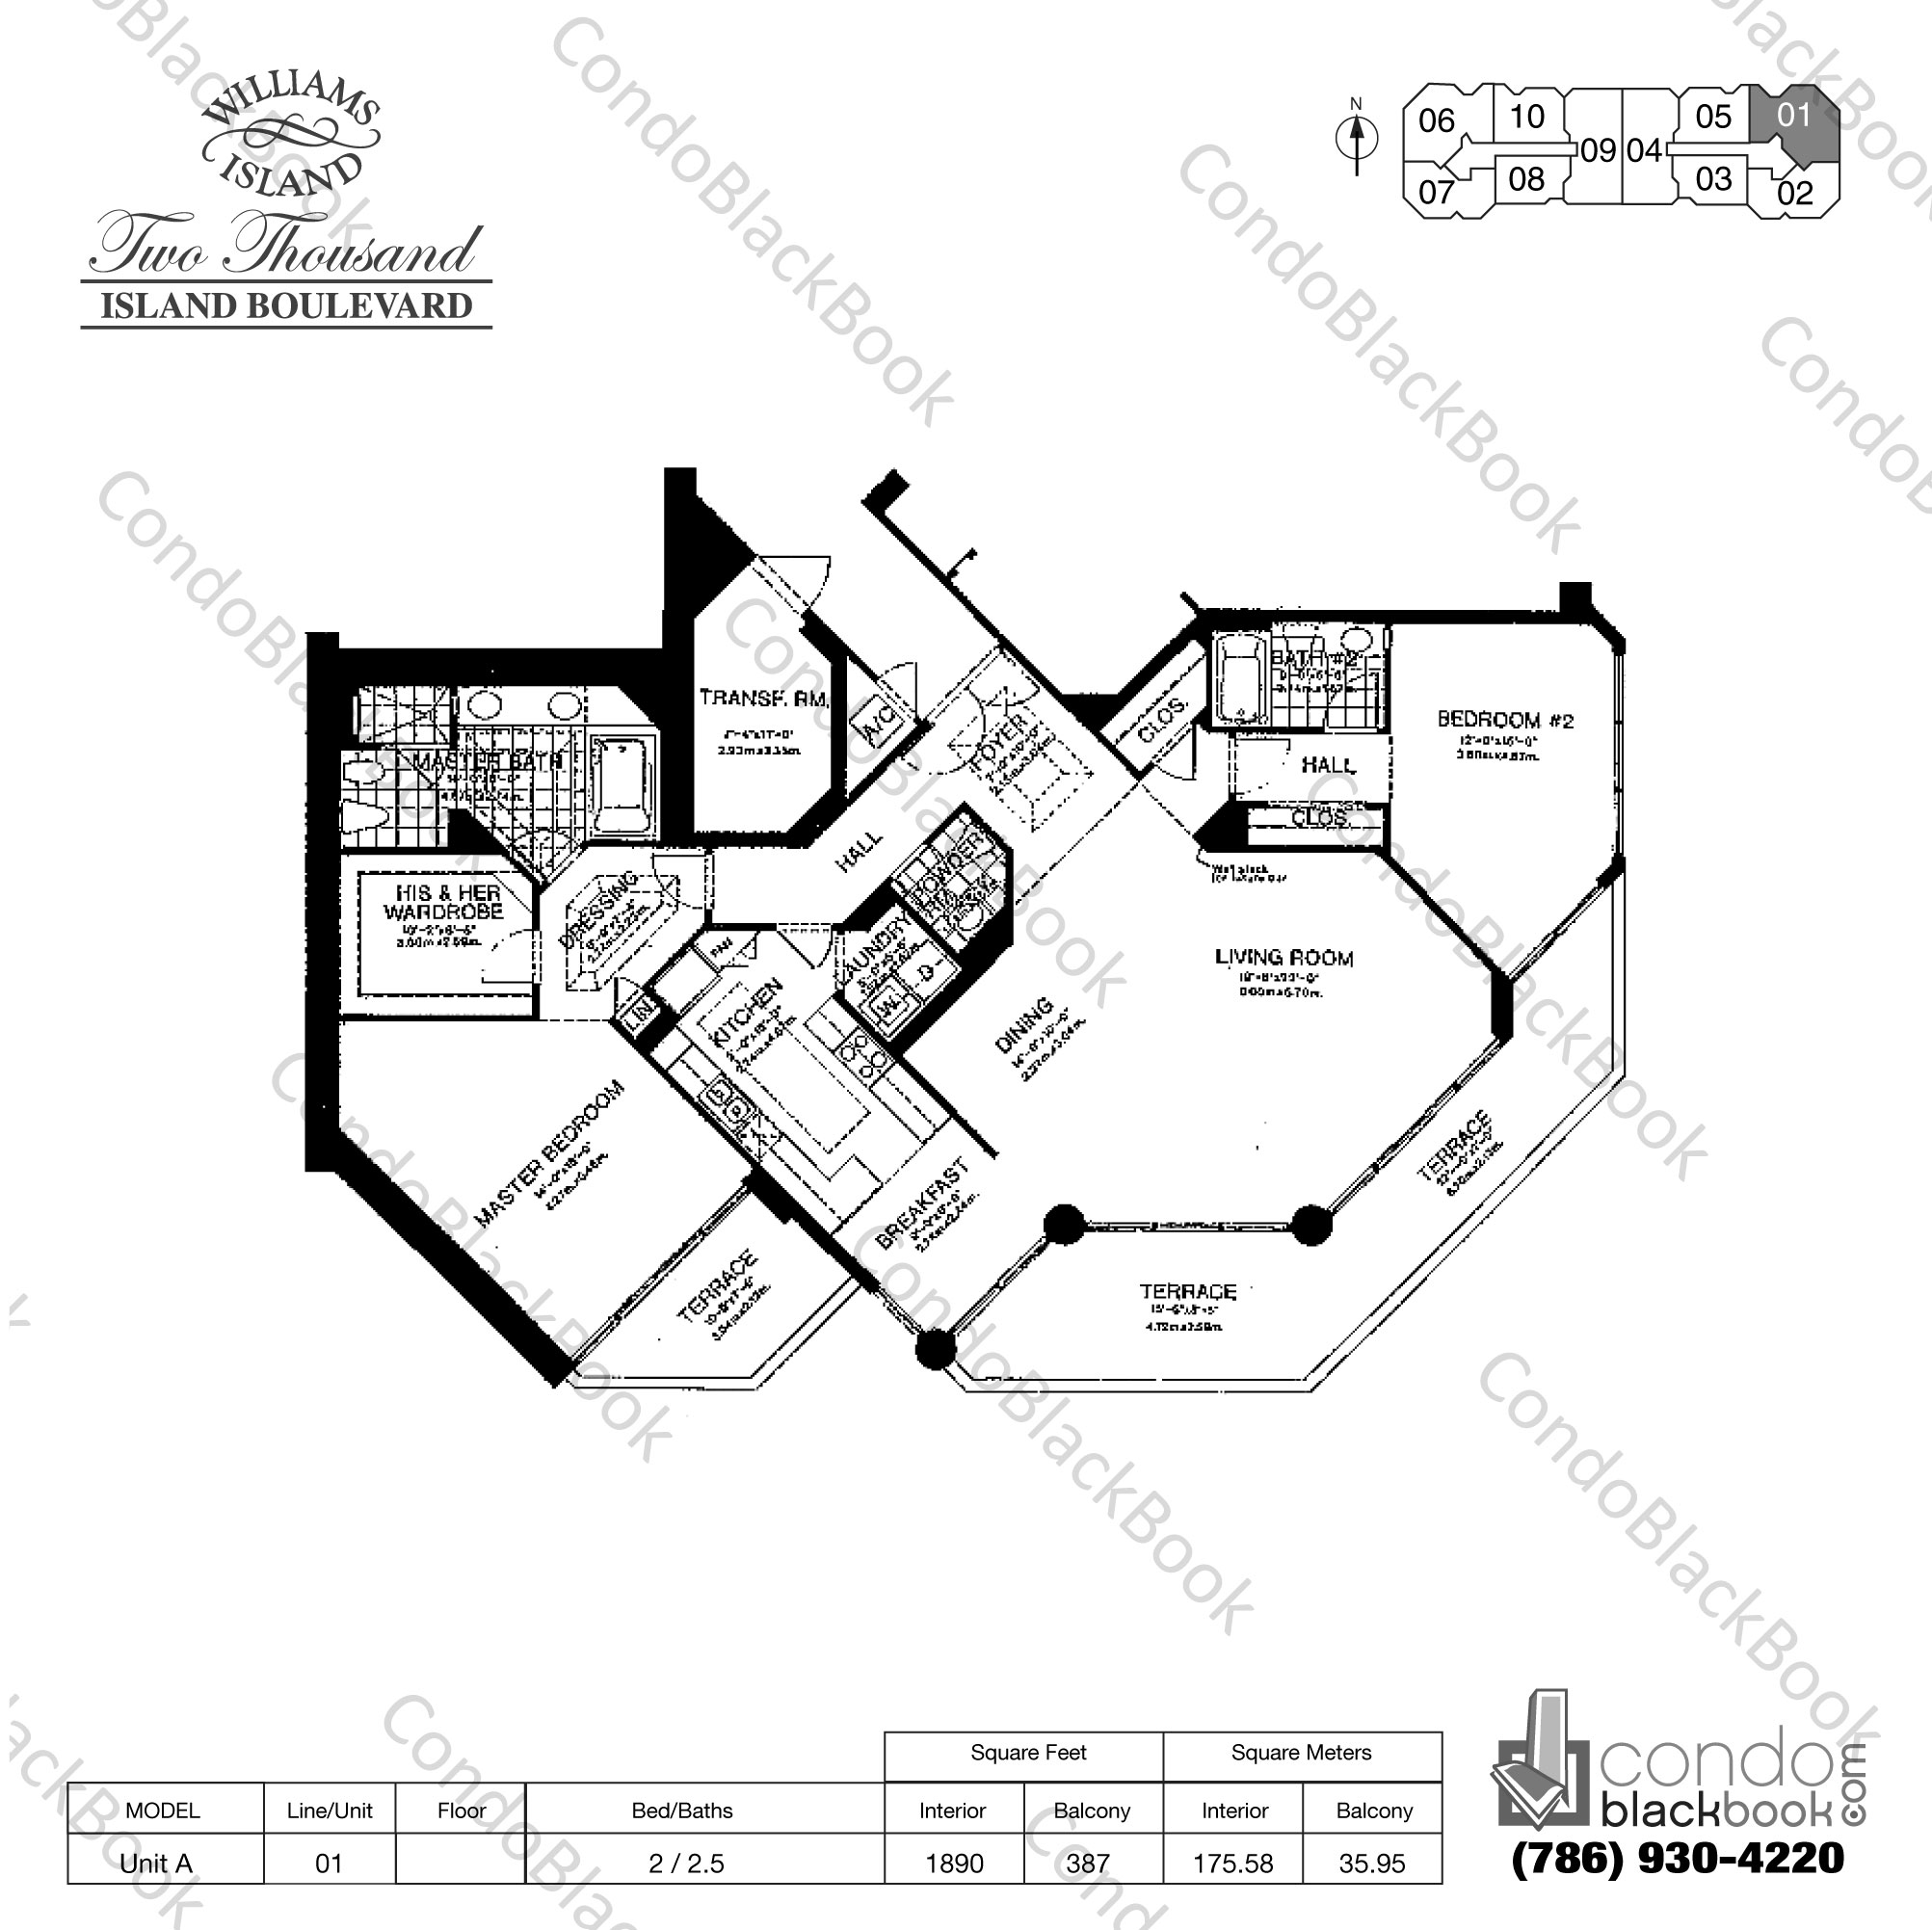 Floor plan for Williams Island 2000 Aventura, model Unit A, line 01, 2 / 2.5 bedrooms, 1890 sq ft